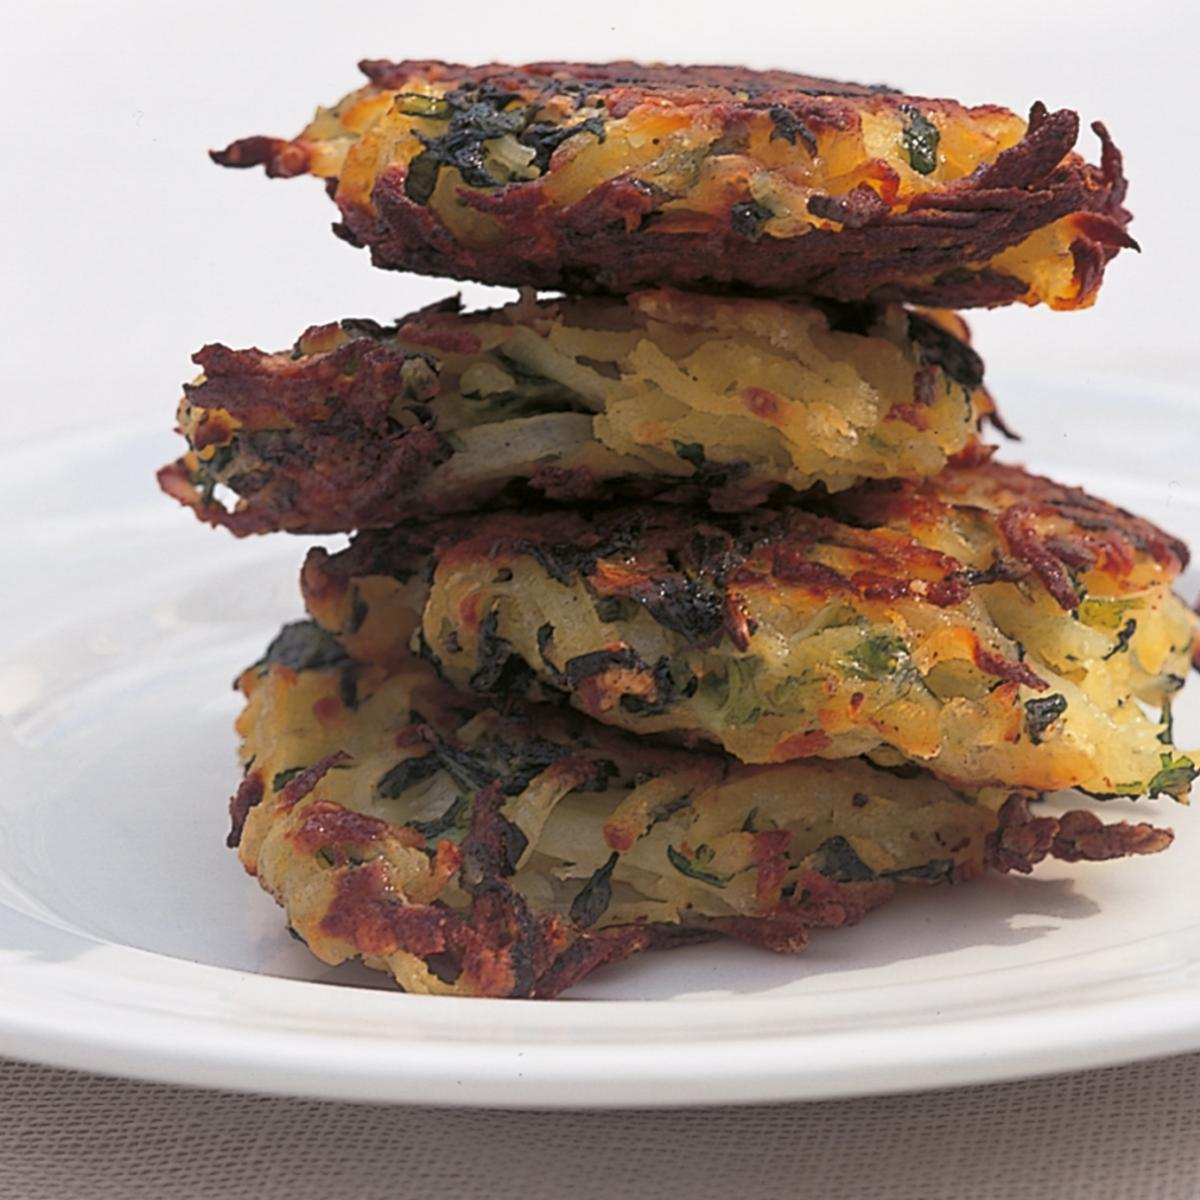 Htc bubble and squeak rosti cooked